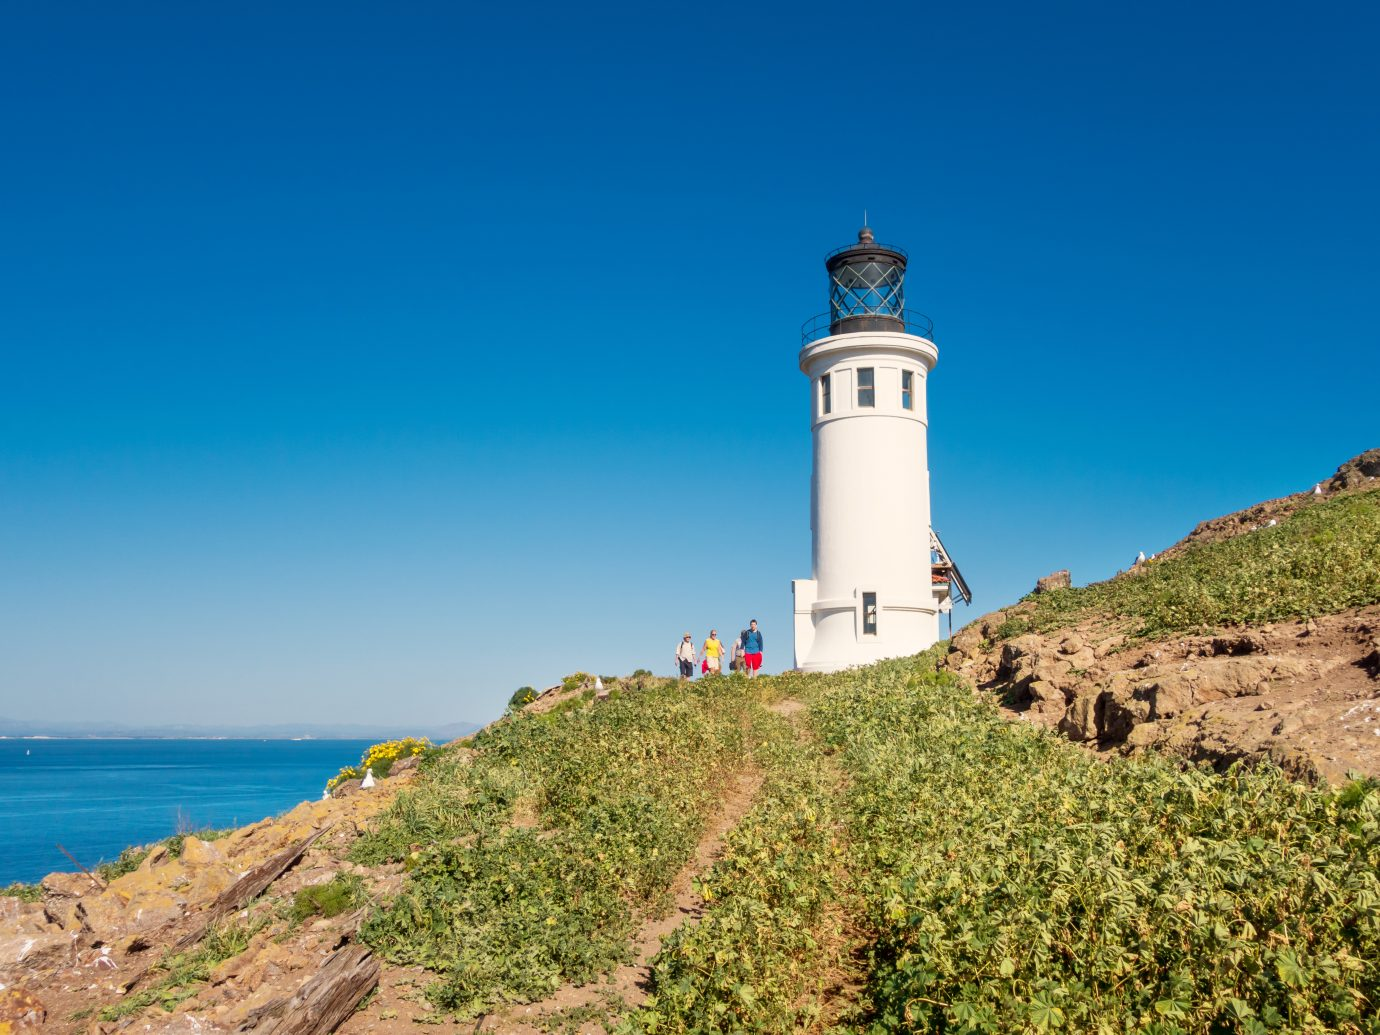 People hike at the lighthouse on Anacapa Island in Channel Islands National Park, California, USA on a sunny day.